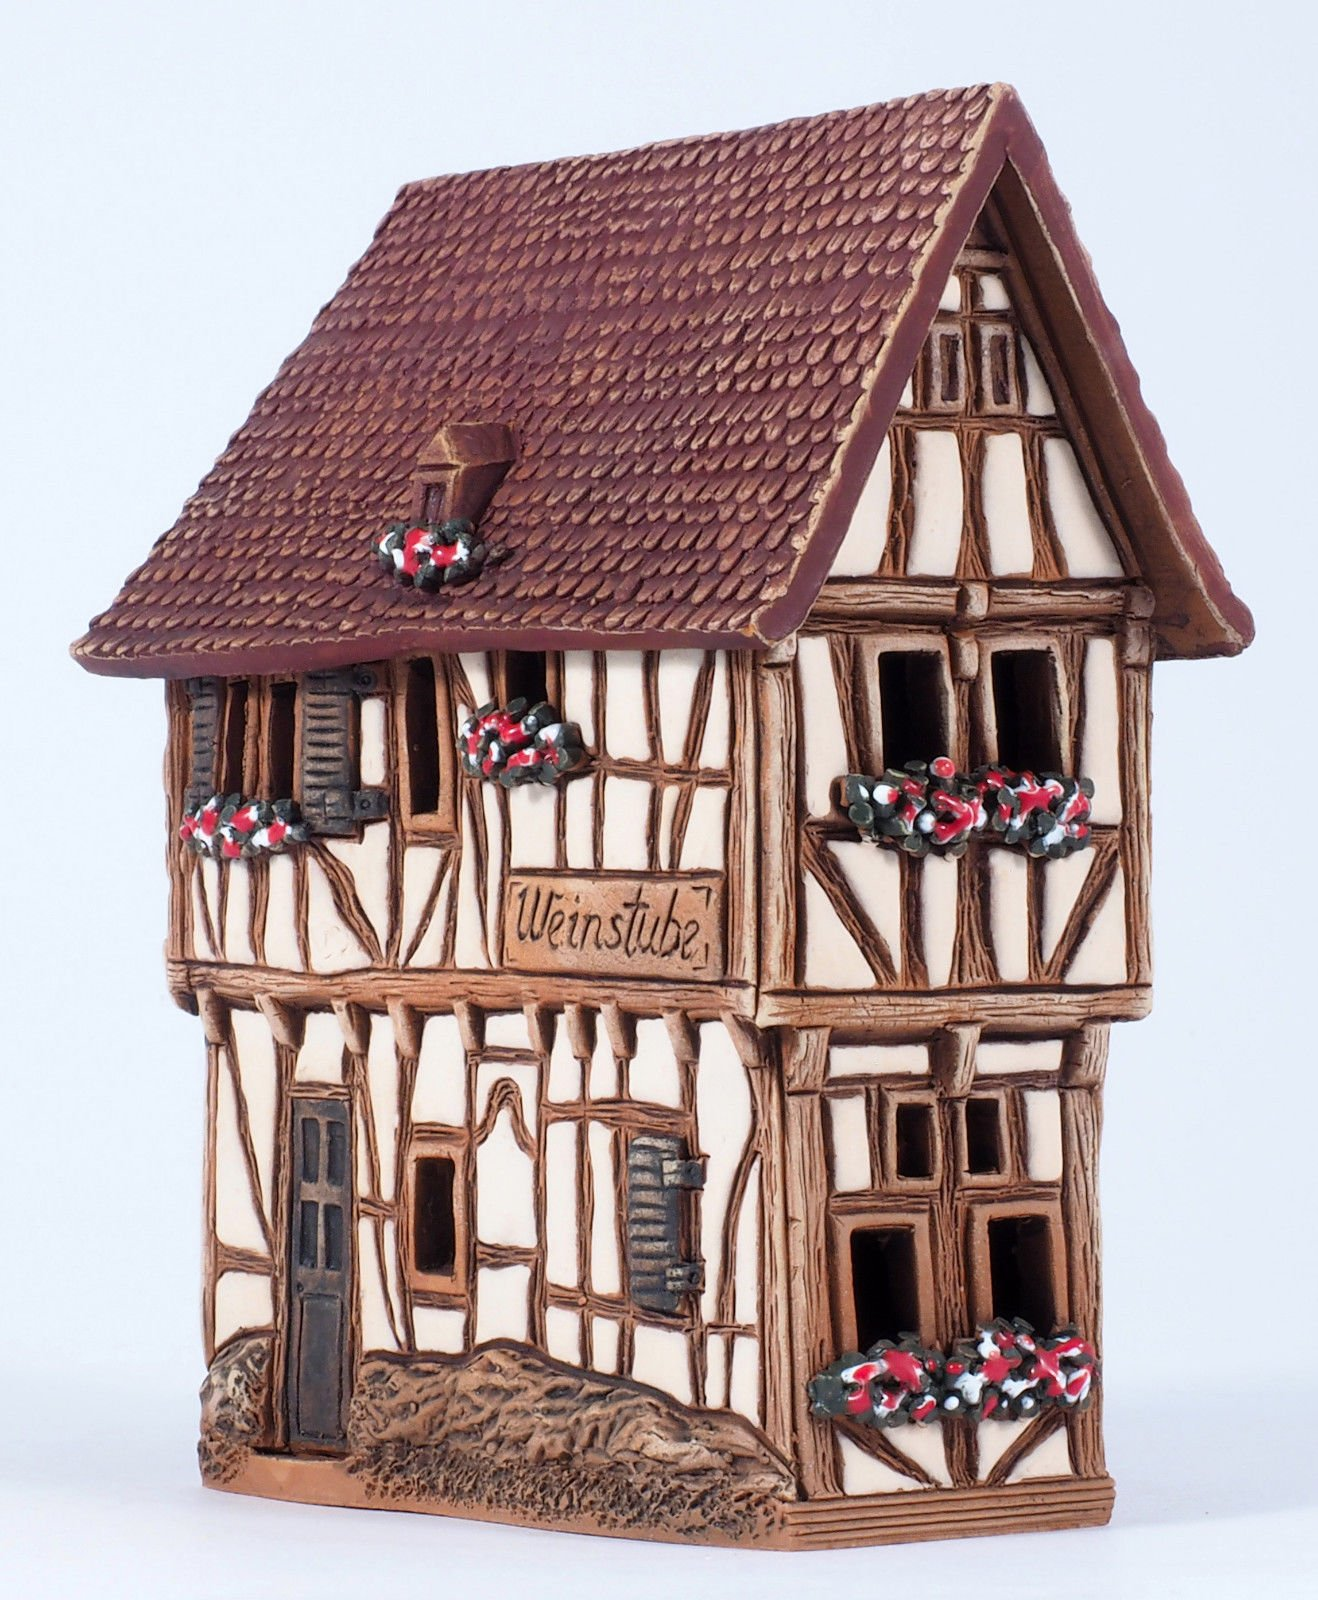 Unique Handmade Ceramic Cone Incense Burner and Incense Cone Holder for Any Room Decor. This Incense Holder is The 4.72 Inches Height Miniature Copy of The Existing Historic House in Bernkastel-Kues by Midene